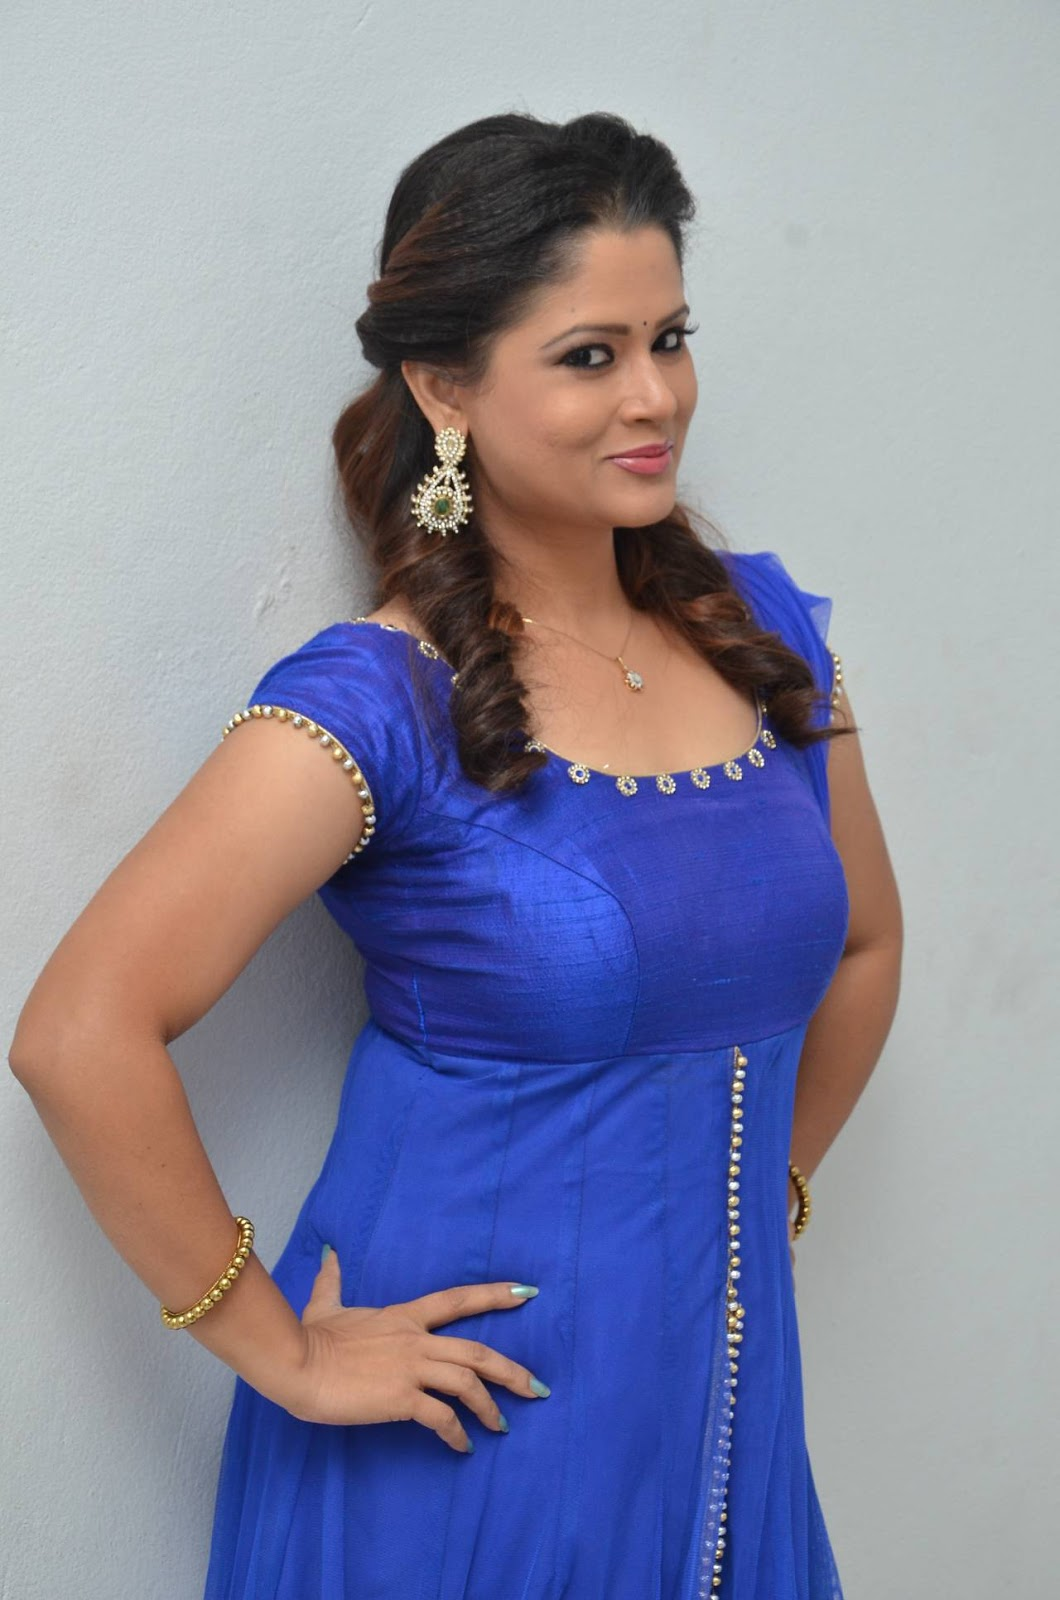 hot actress photos